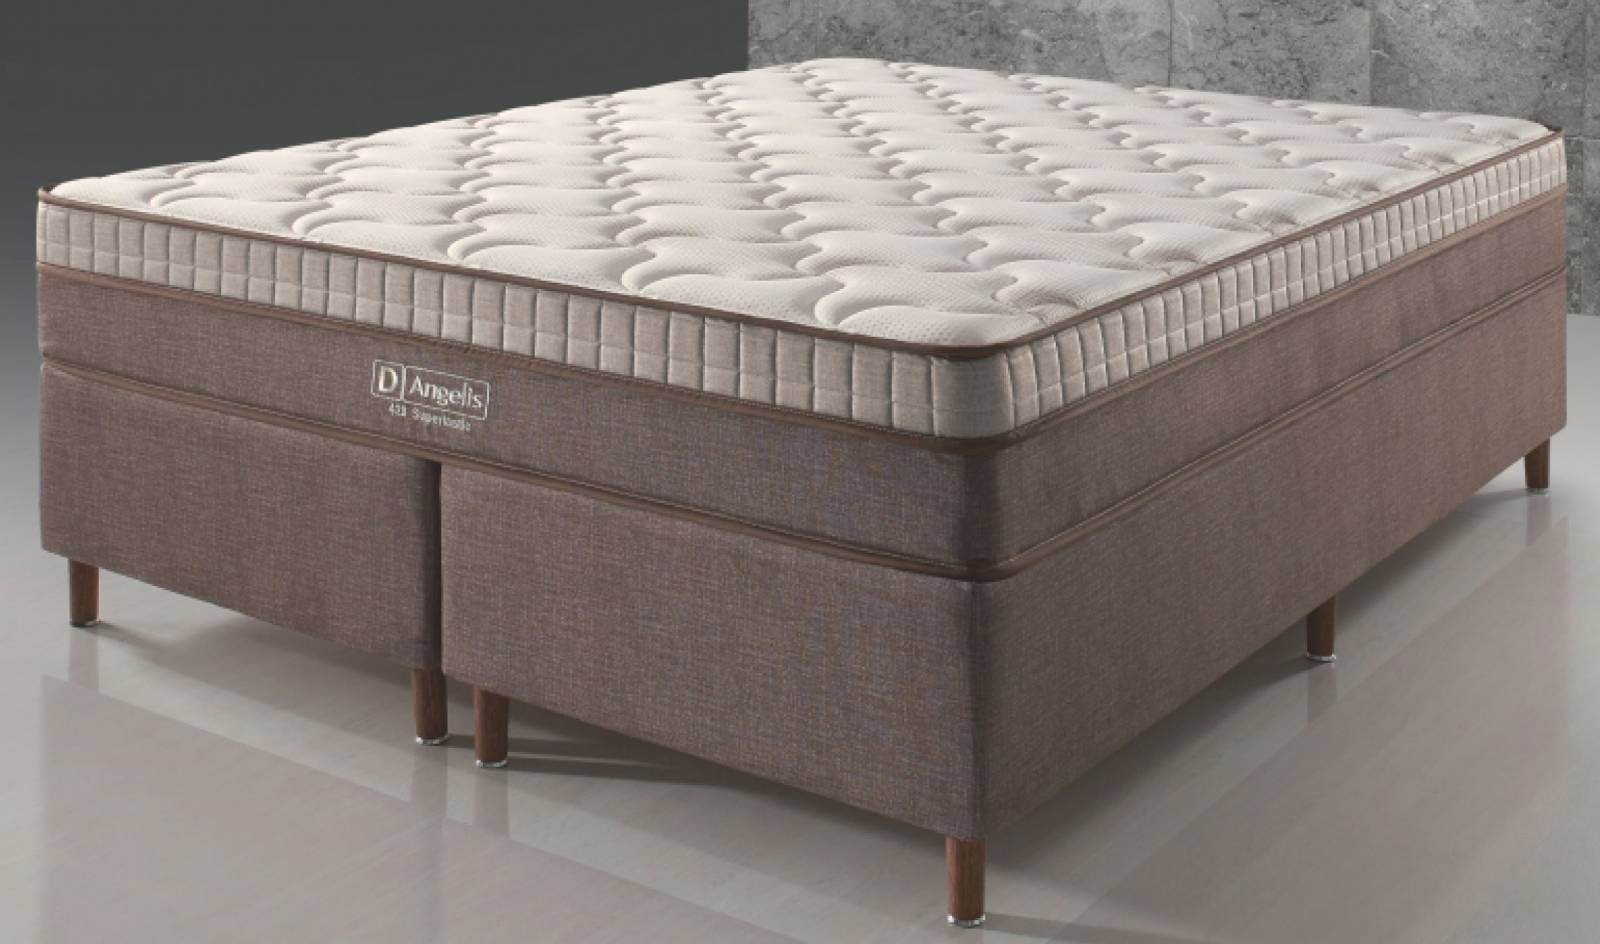 Conjunto Cama Box DG 428 Látex D'Angelis - All Home